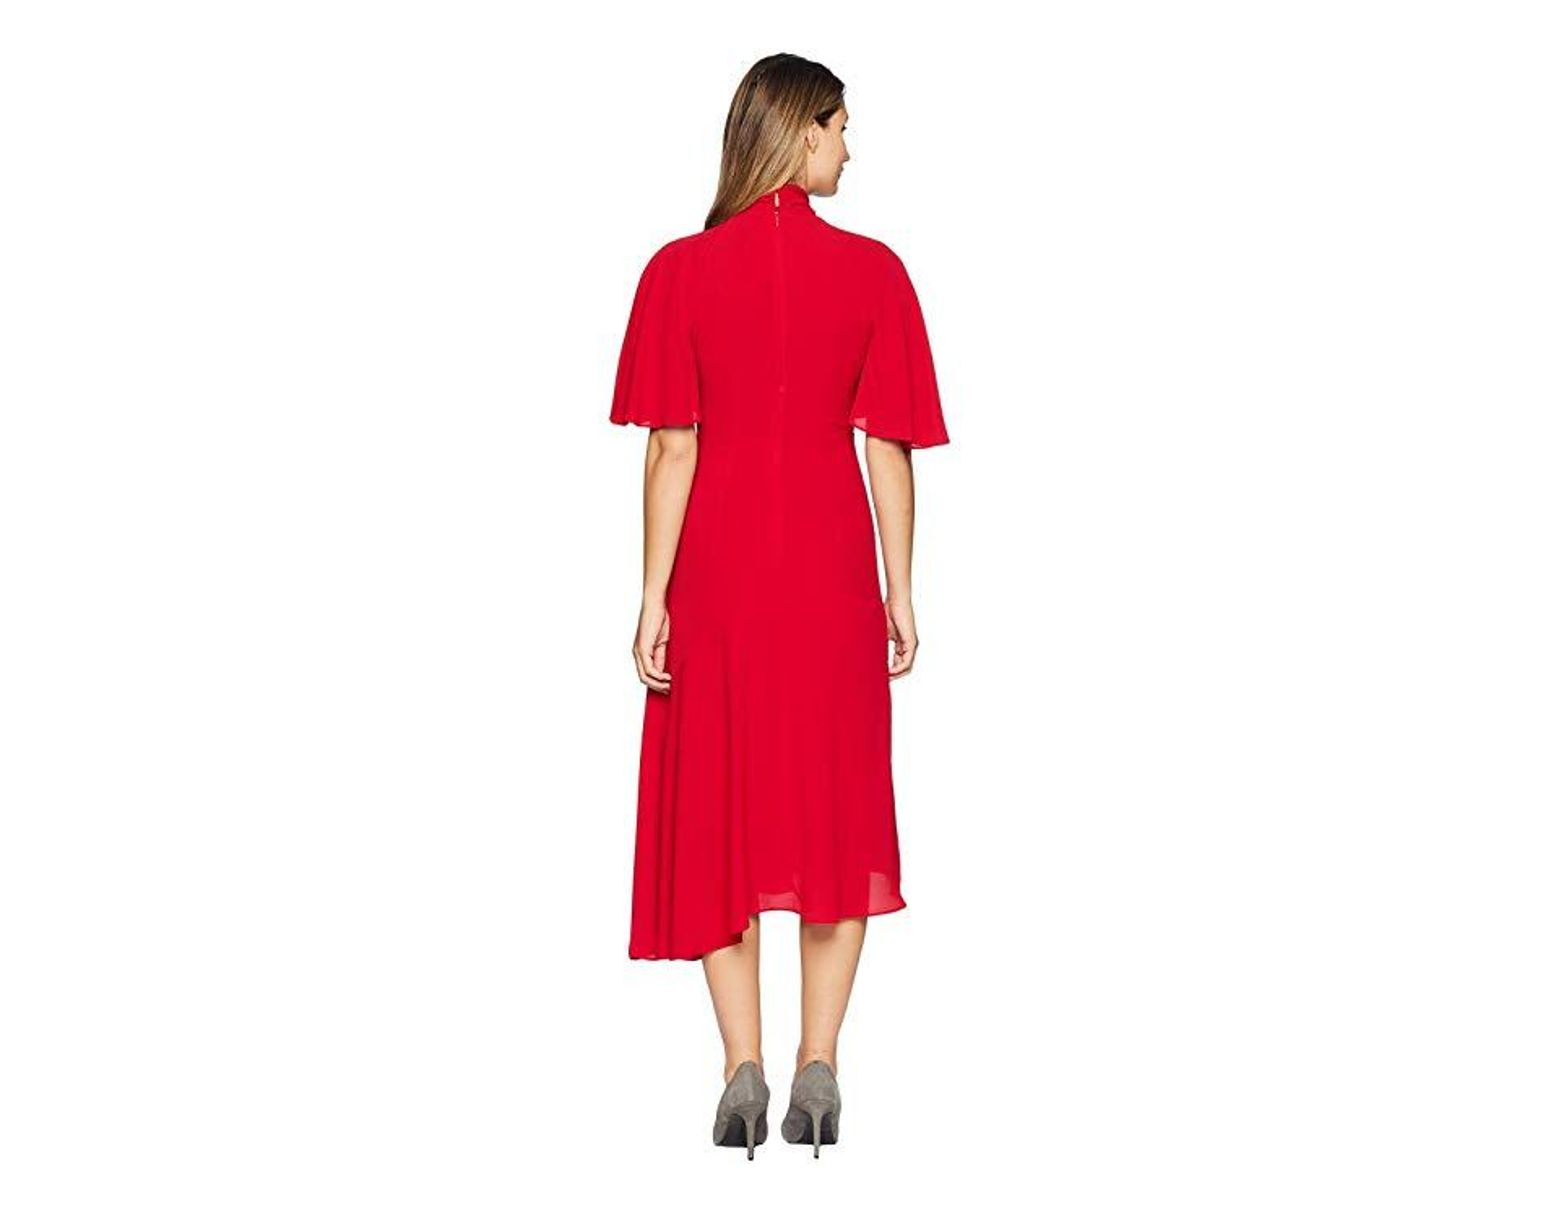 d8bb5d46 Maggy London Catalina Crepe Twist Neck Asymmetrical Midi Dress (cranberry)  Dress in Red - Save 44% - Lyst